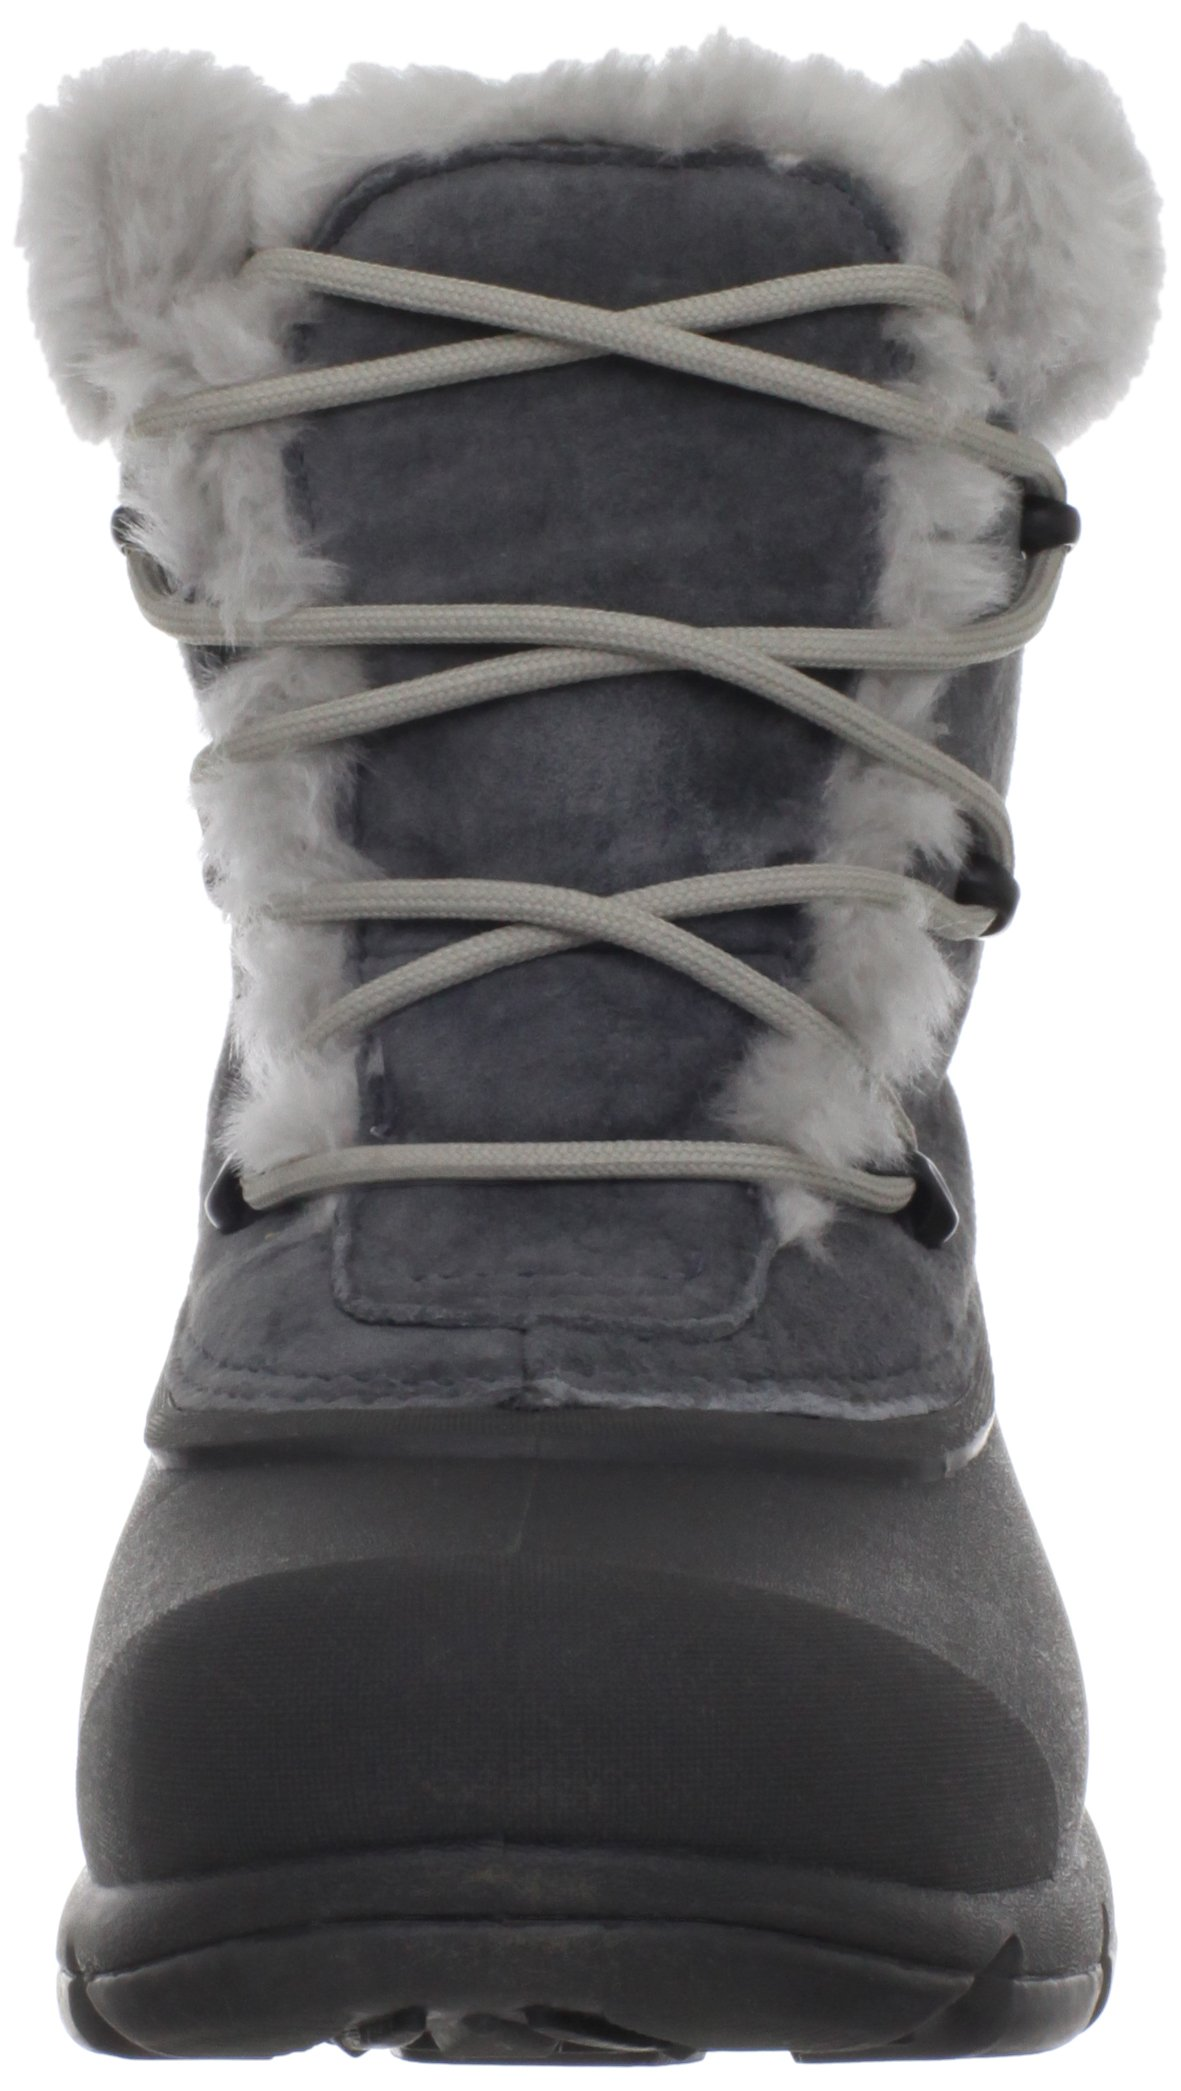 Sorel Women's Snow Angel Lace Boot,Charcoal,8 M US by SOREL (Image #4)